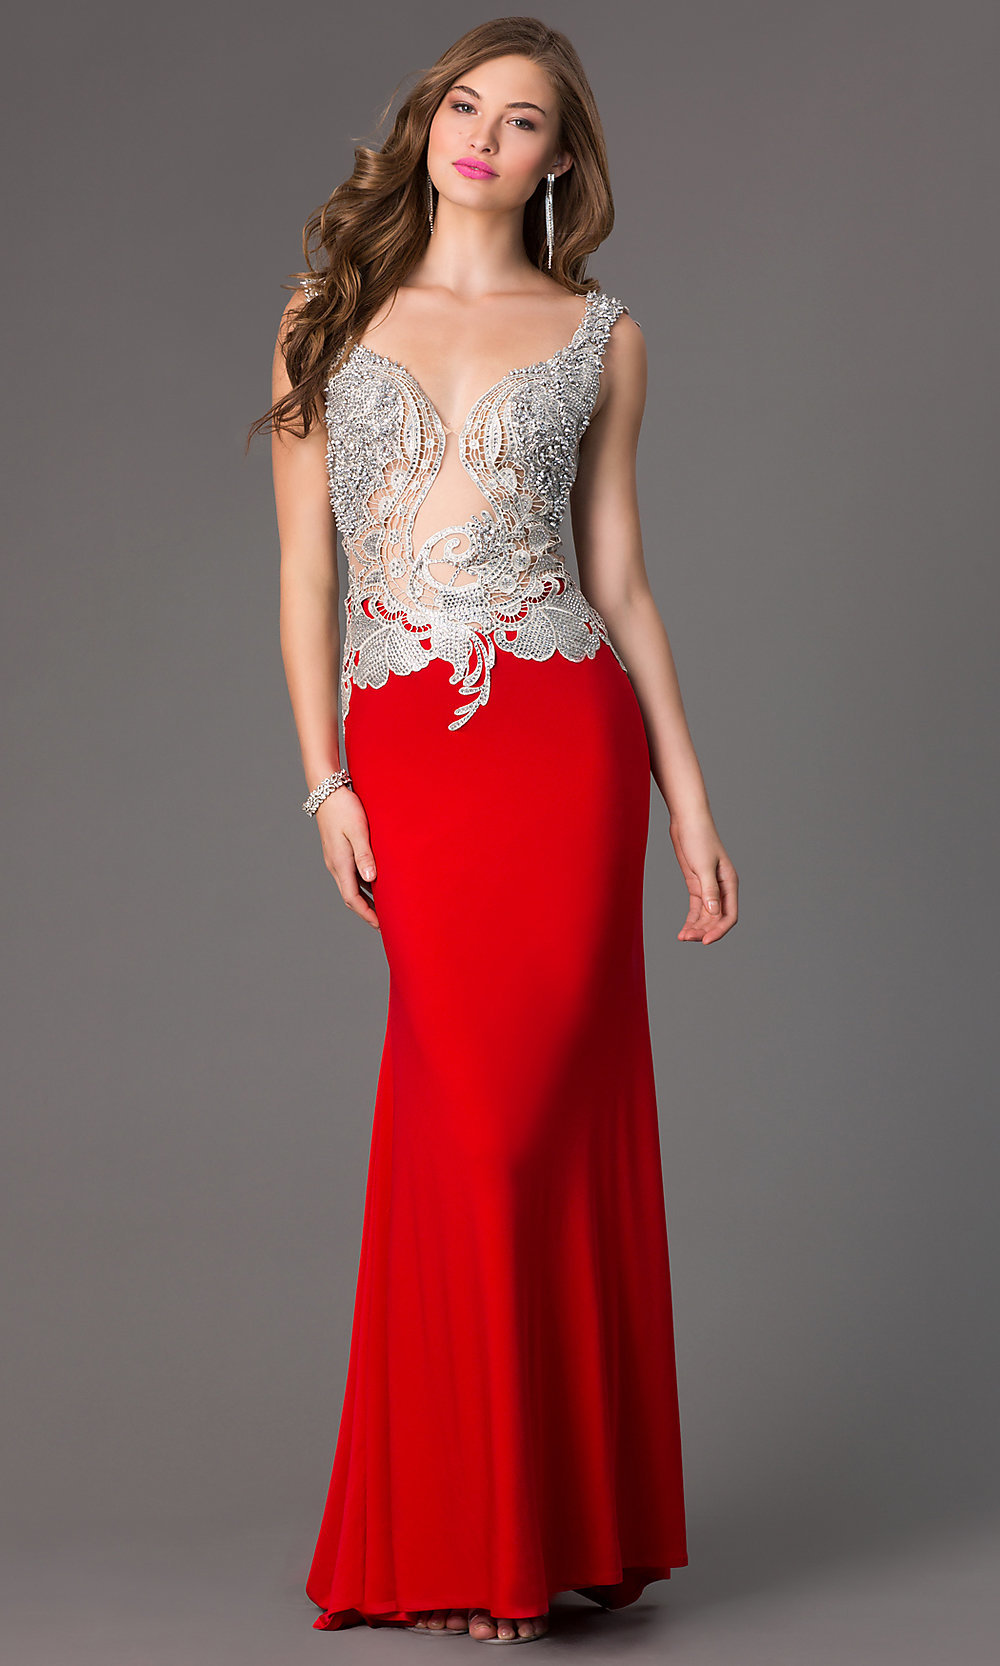 Beaded Evening Gown for Prom, Alyce 2425 Prom Dress